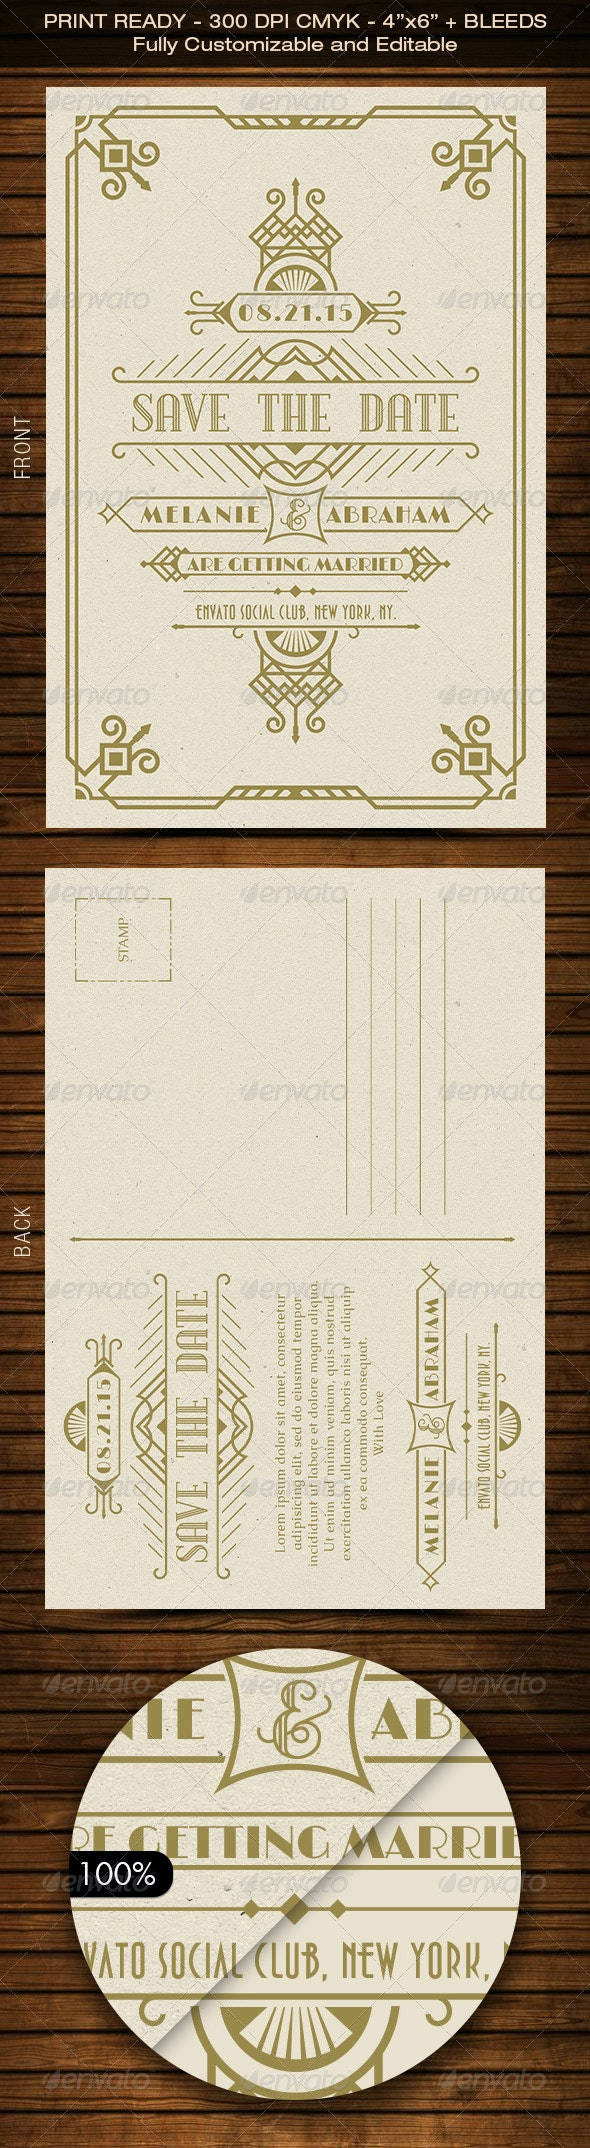 Wedding Save the Date Post Card - Art Deco 01 - Weddings Cards & Invites